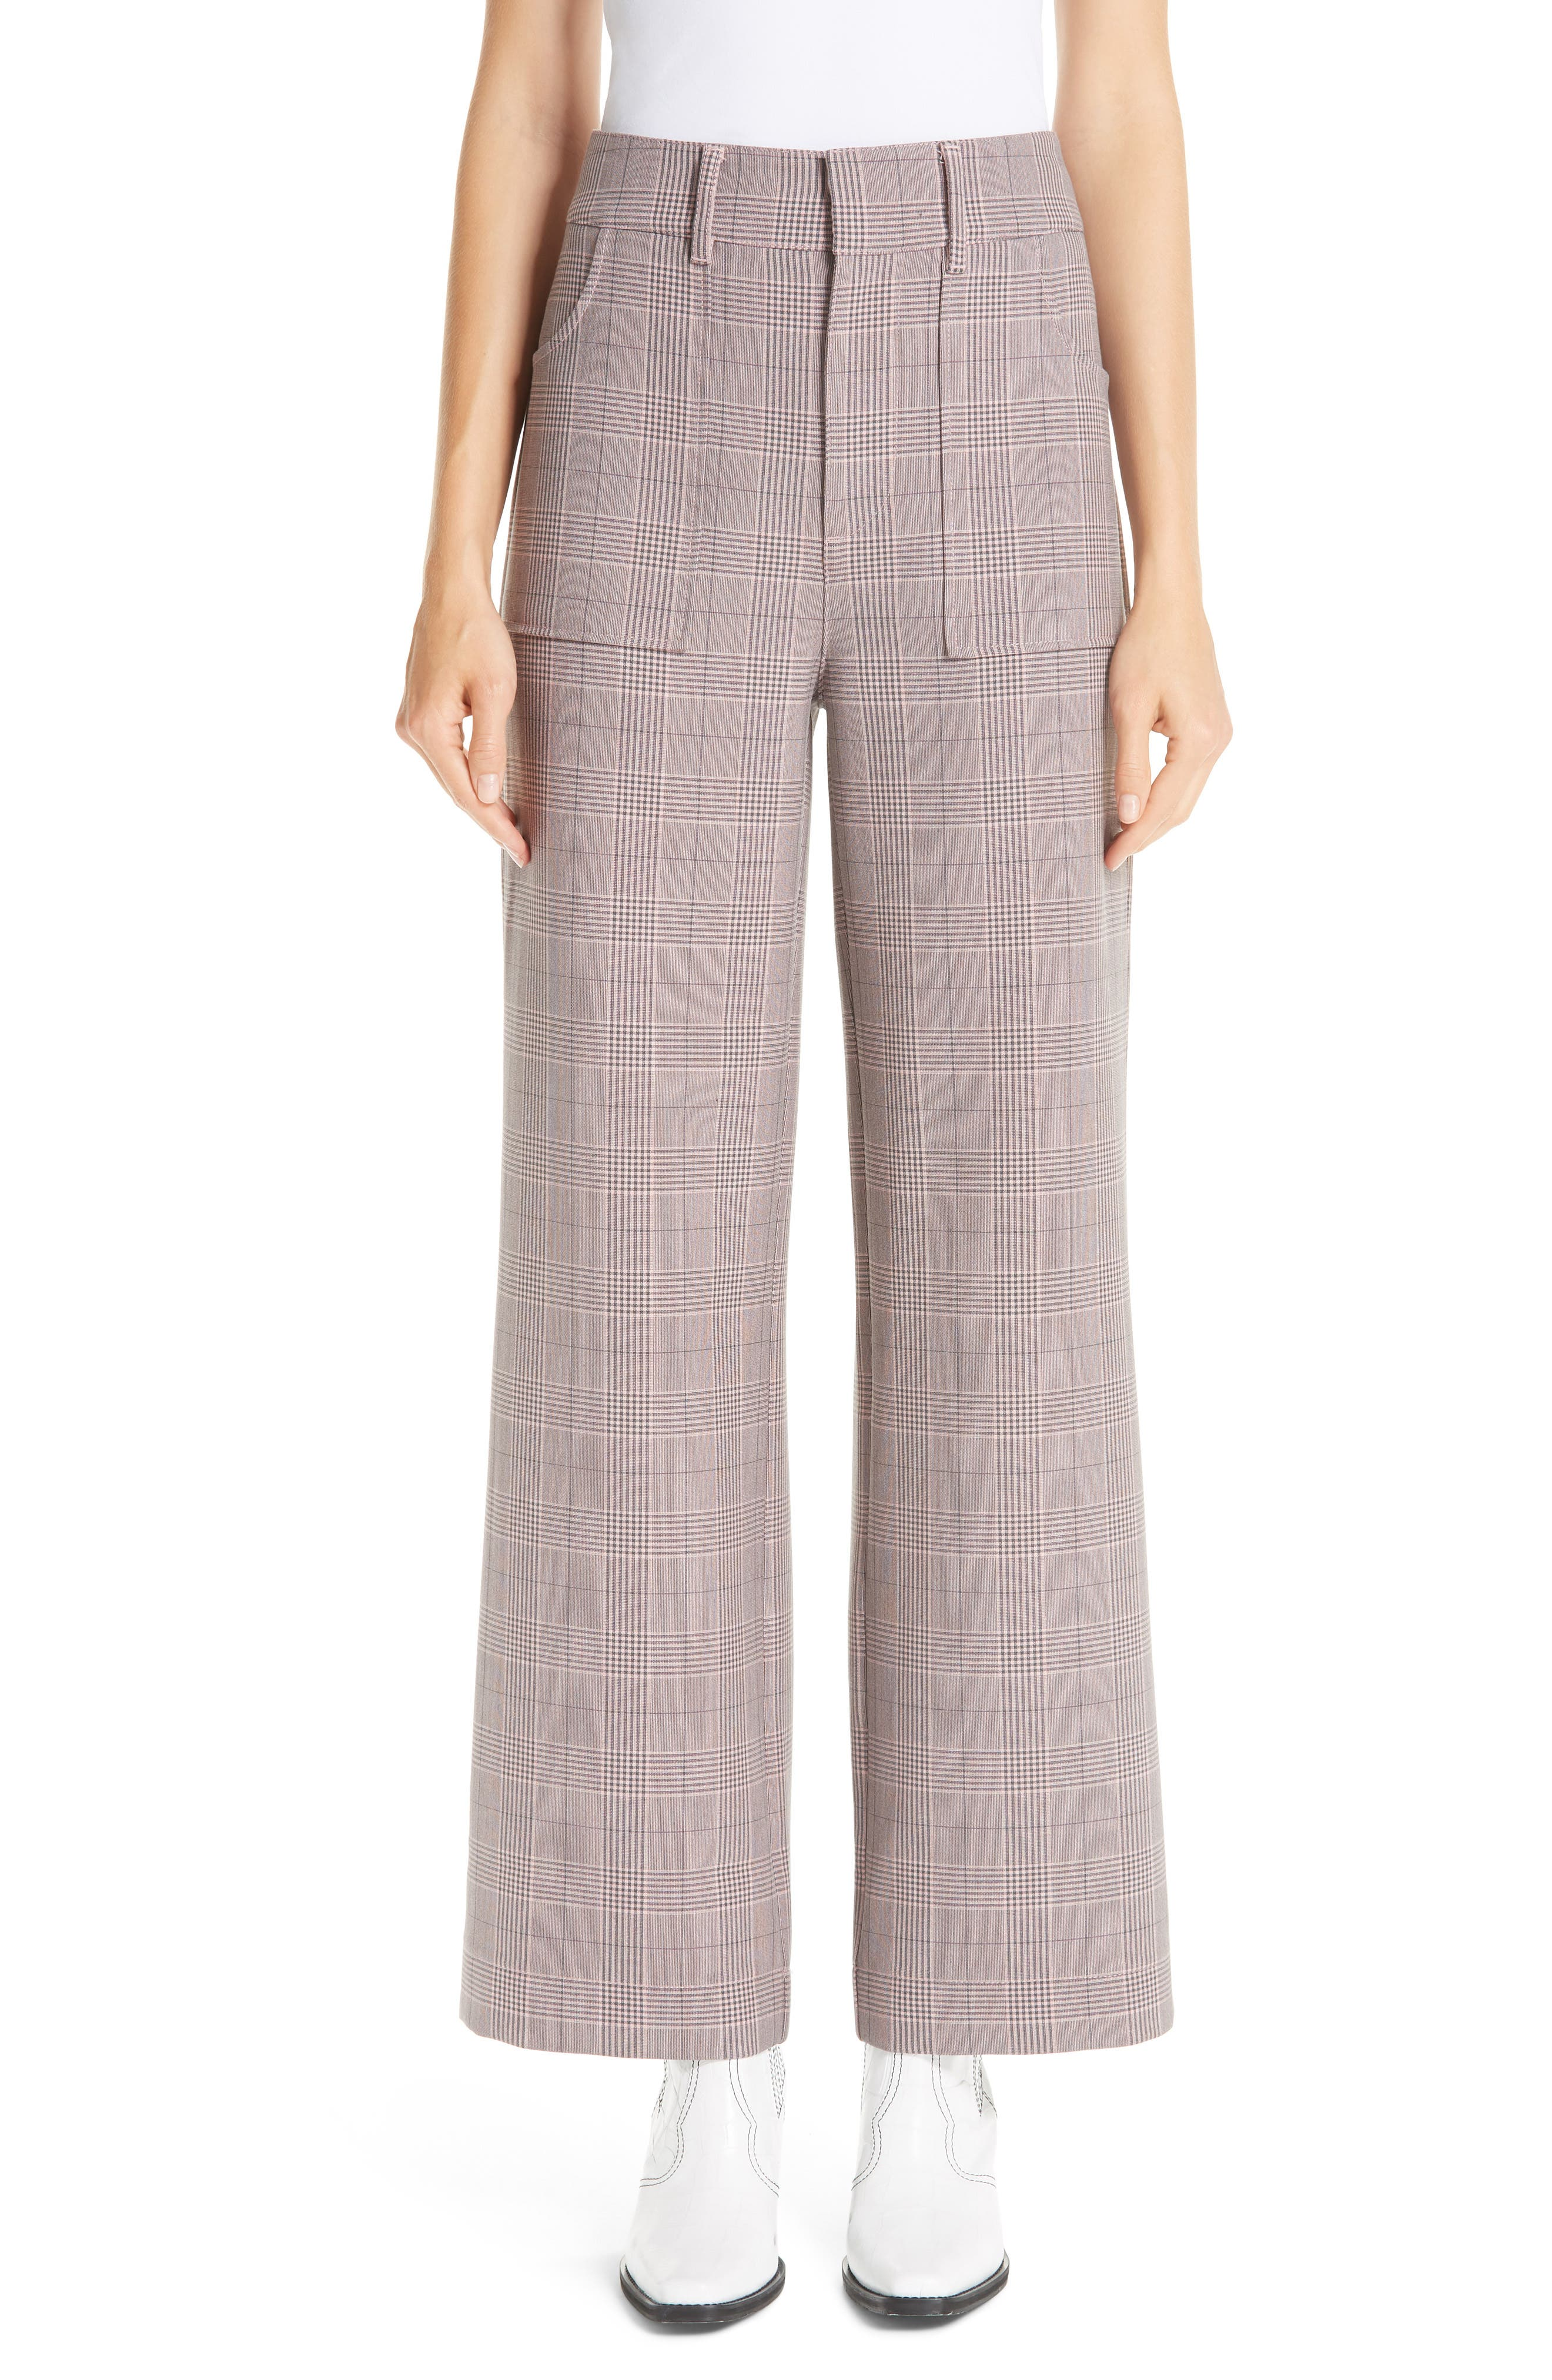 GANNI Suiting Pants, Main, color, SILVER PINK 499